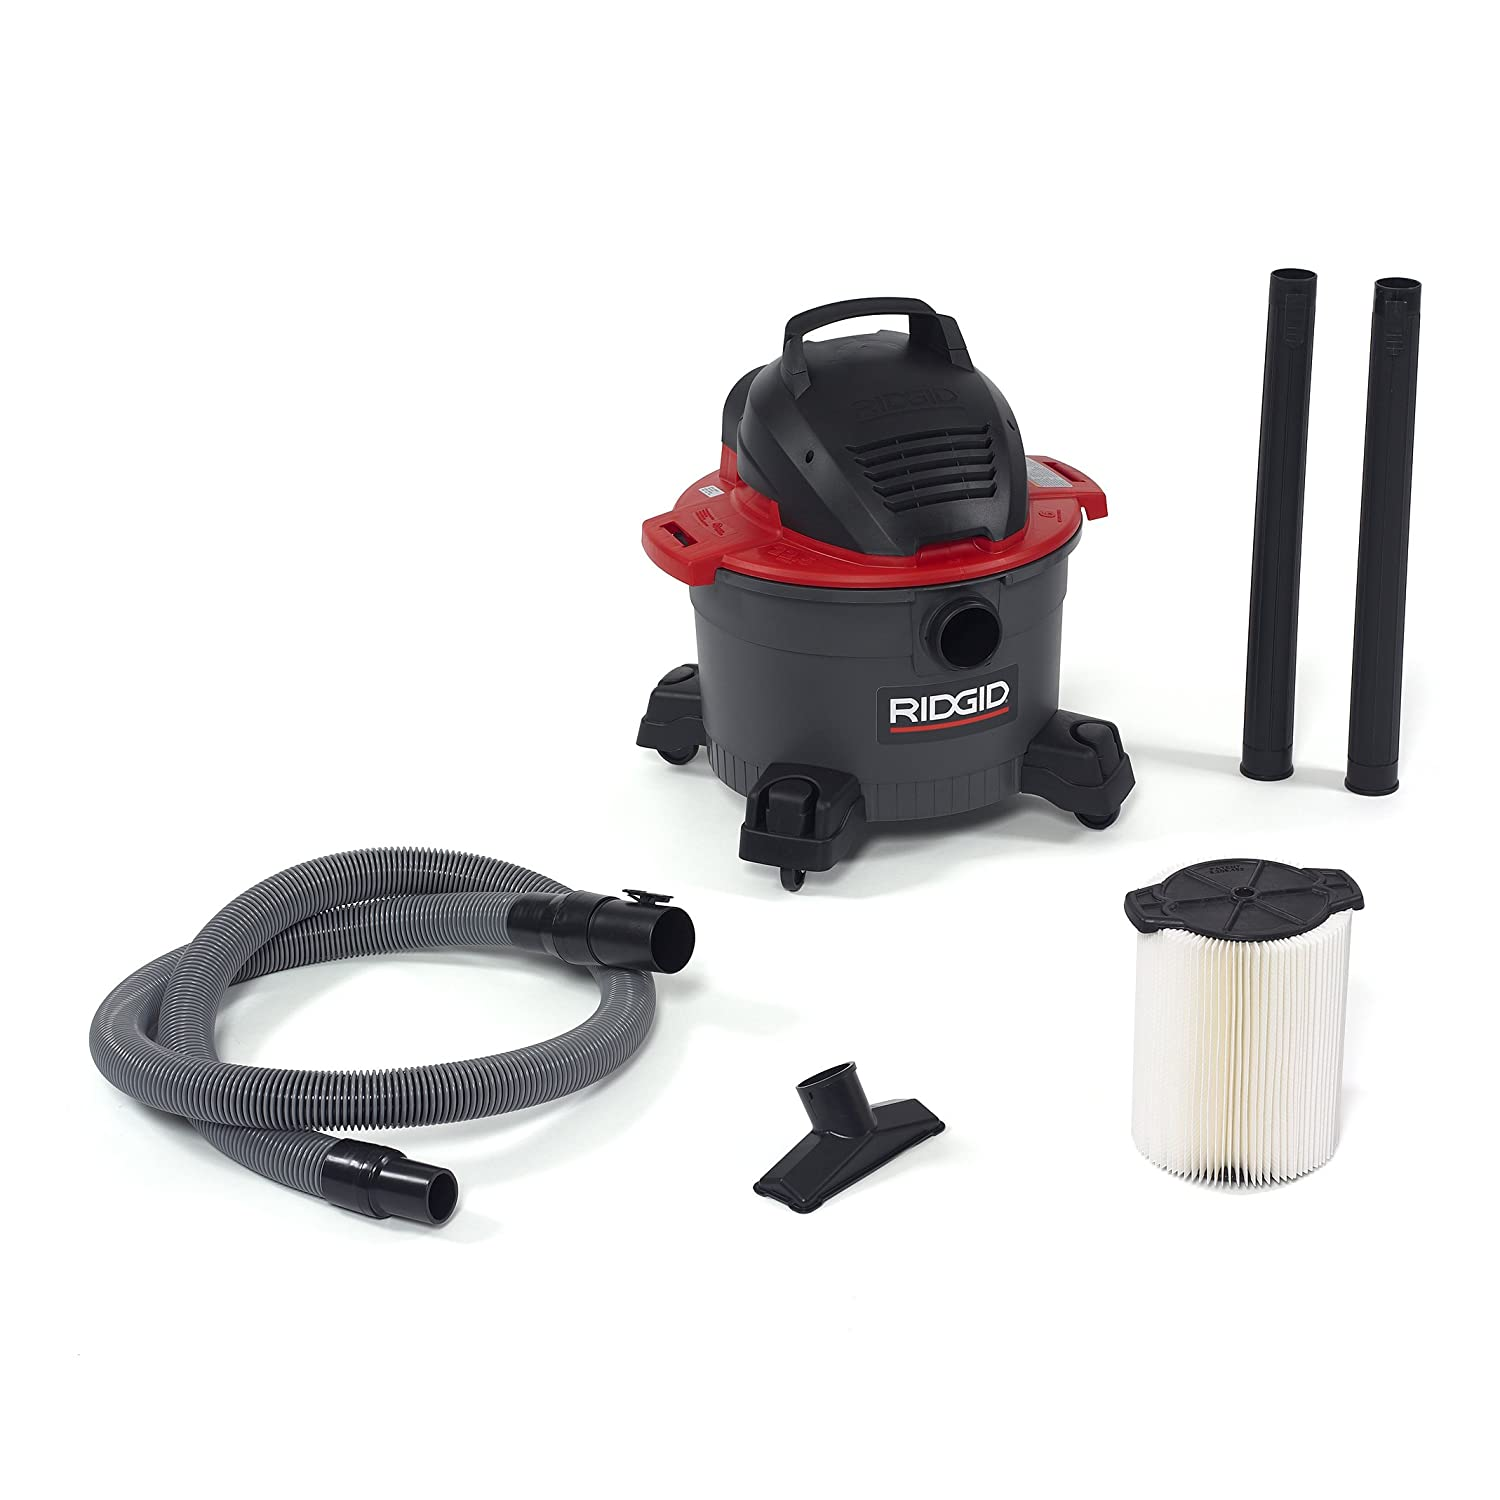 Ridgid 50308 6000RV Wet/Dry Vacuum, 6 Gal, Red 50308RID